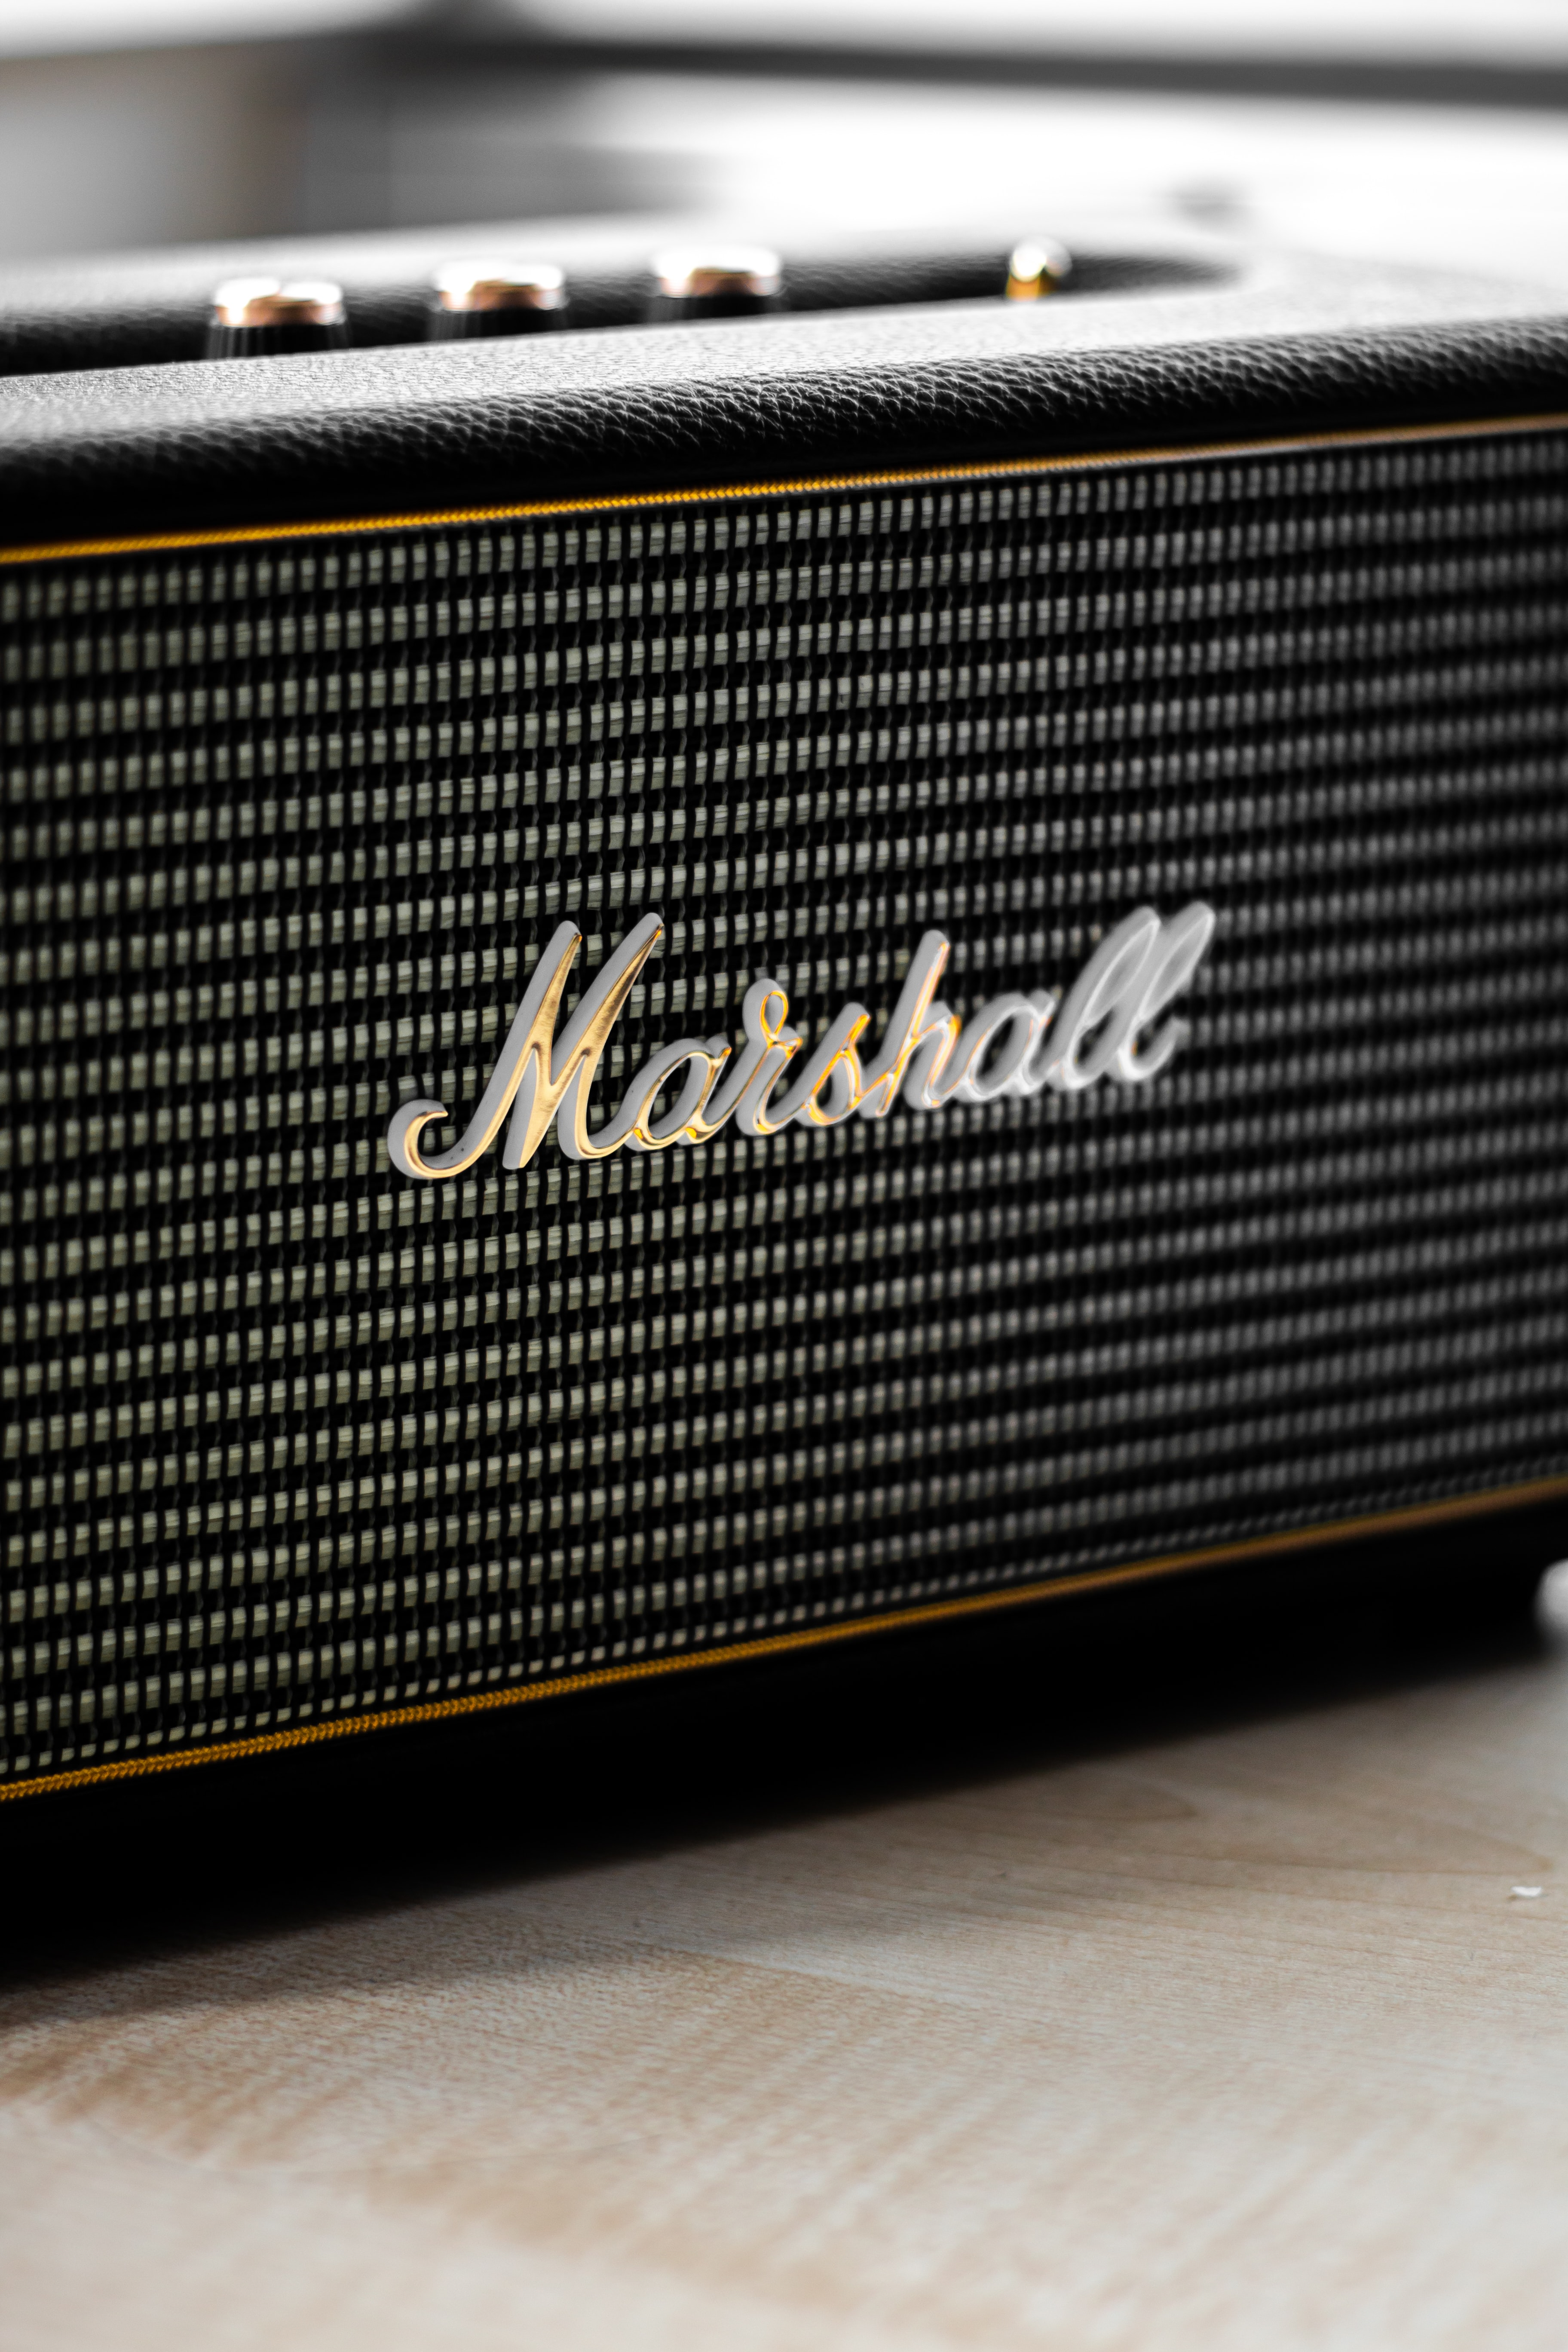 closeup photo of gray and black Marshall guitar amplifier